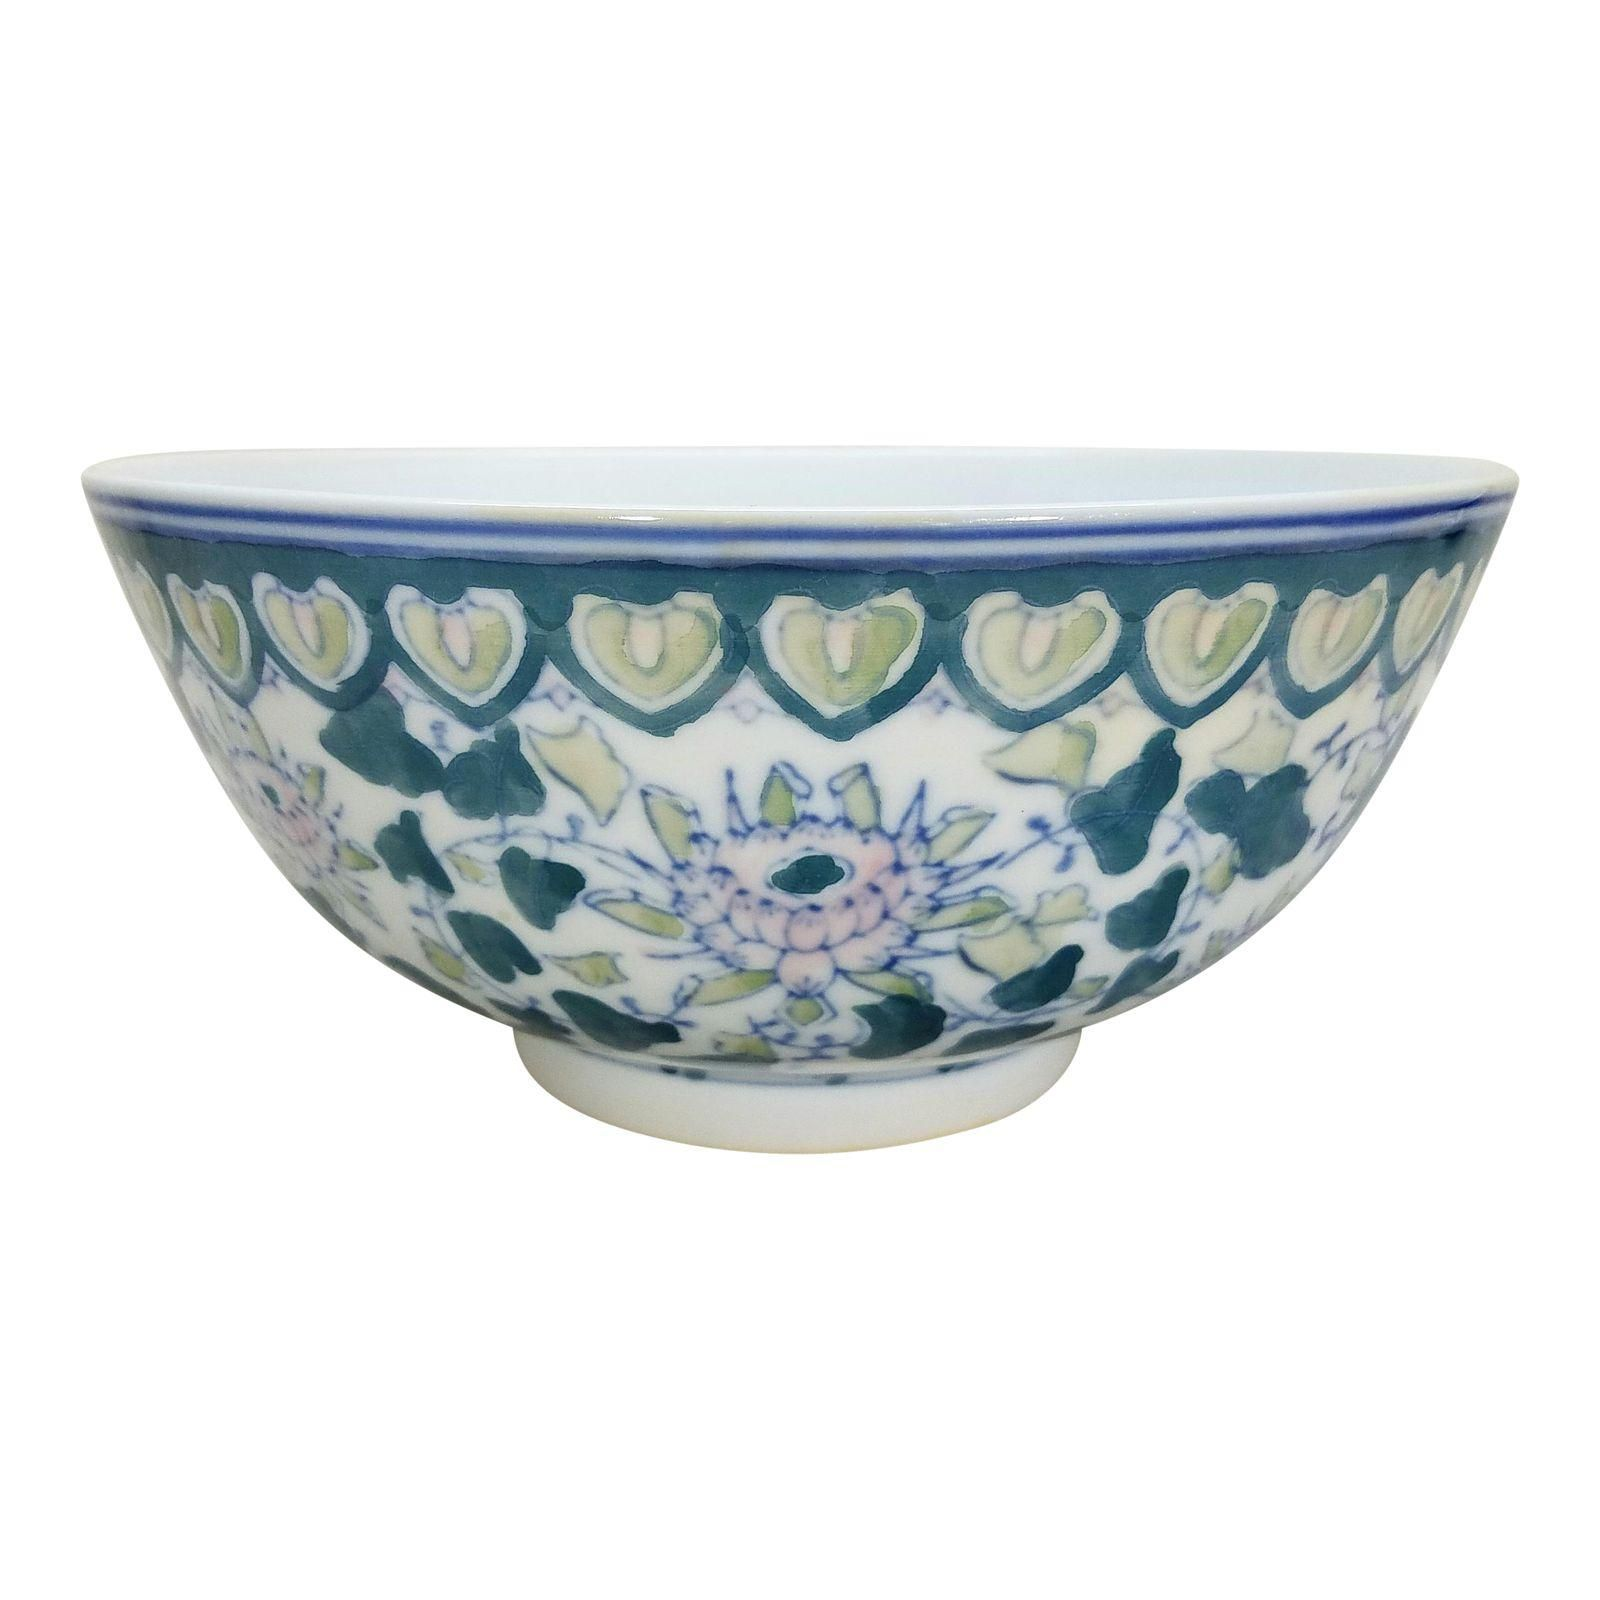 Unique Decorative Bowls Chinoiserie Decorative Bowl  Chinoiserie Bowls And Display